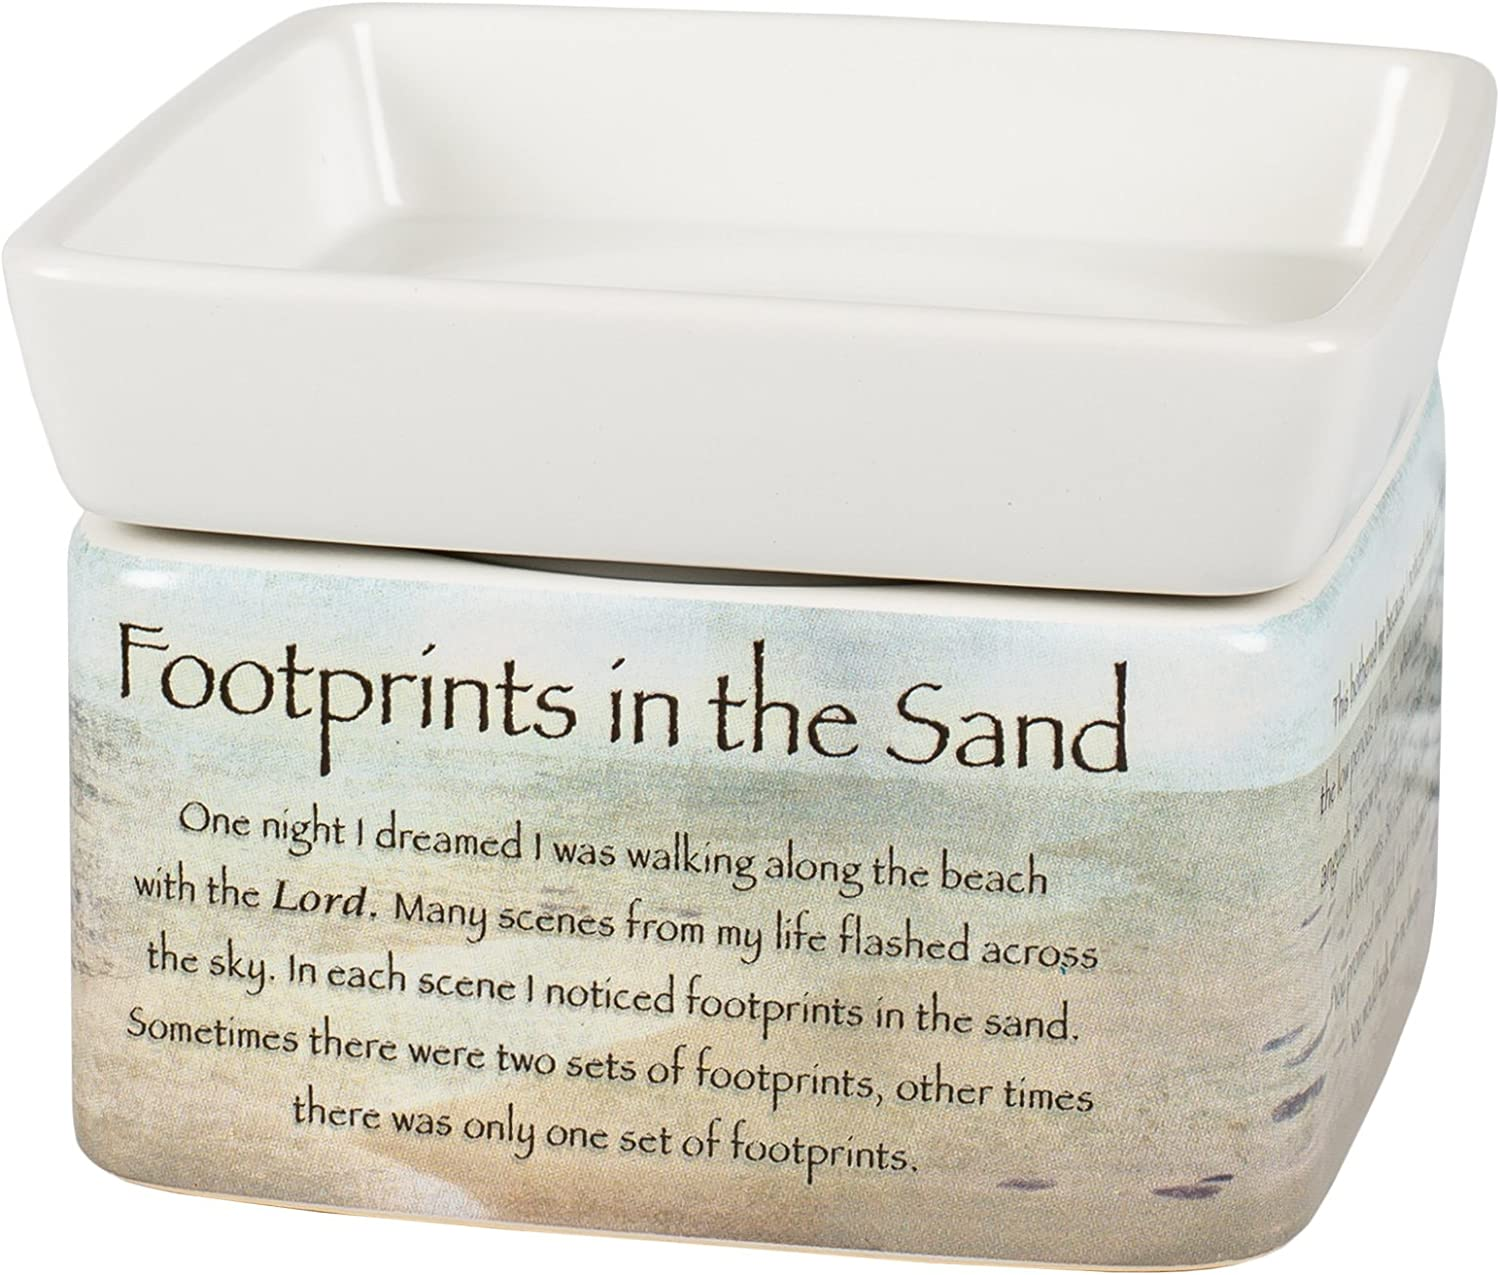 Elanze Designs Footprints in The Sand Ceramic Stoneware Electric 2 in 1 Jar Candle and Wax and Oil Warmer